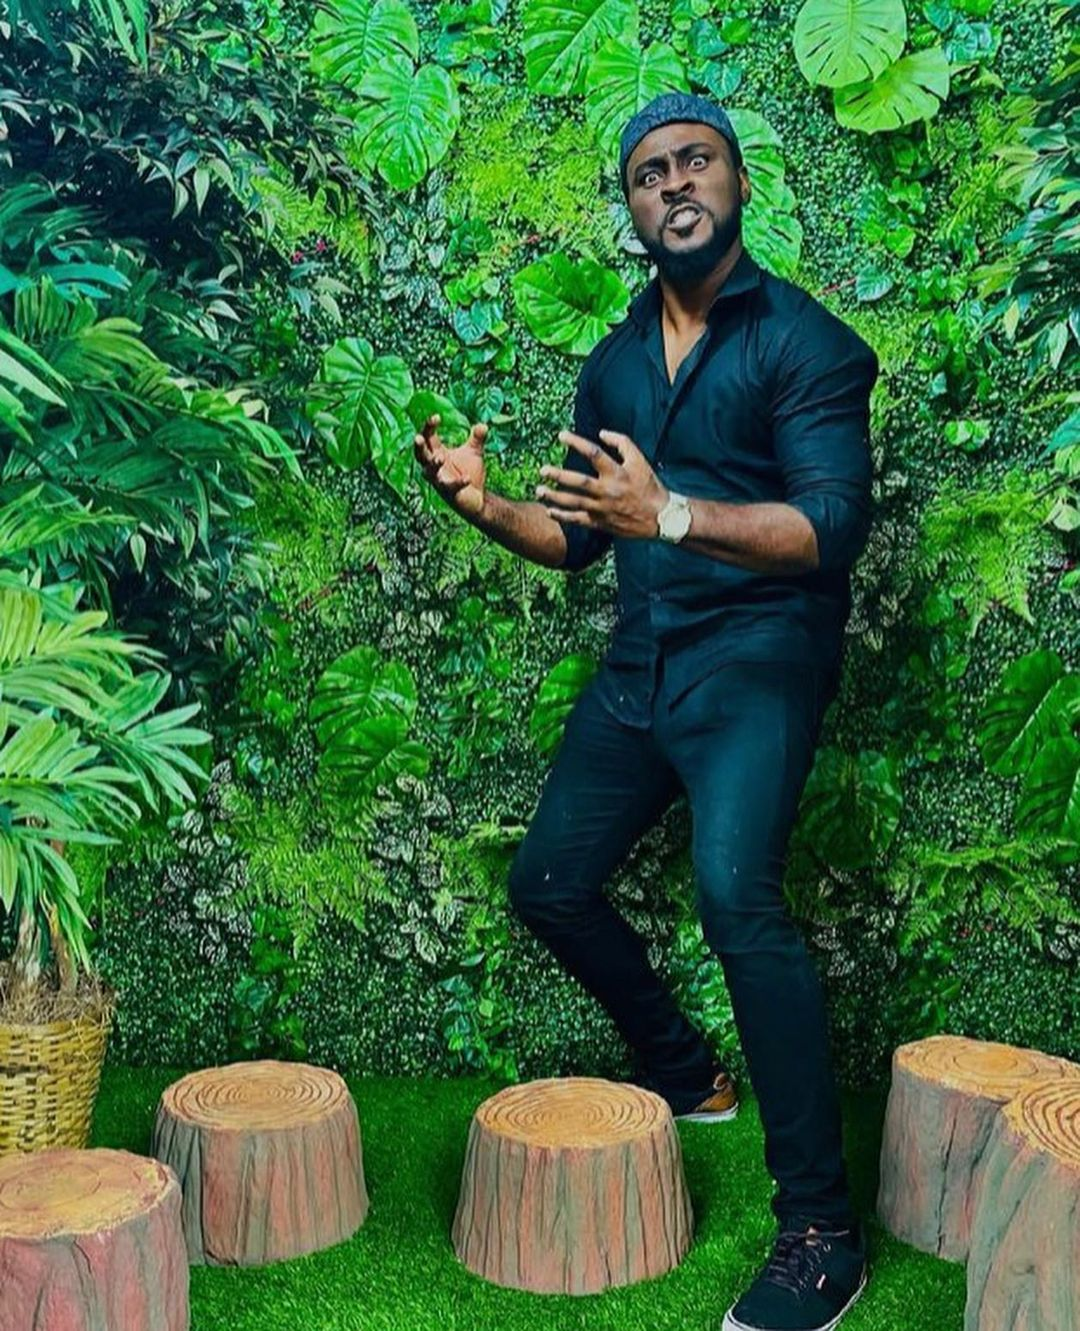 """#BBNaija: """"Pere is lonely and exhibiting suicidal behaviors"""" - Saga says, suggests voluntary exit"""